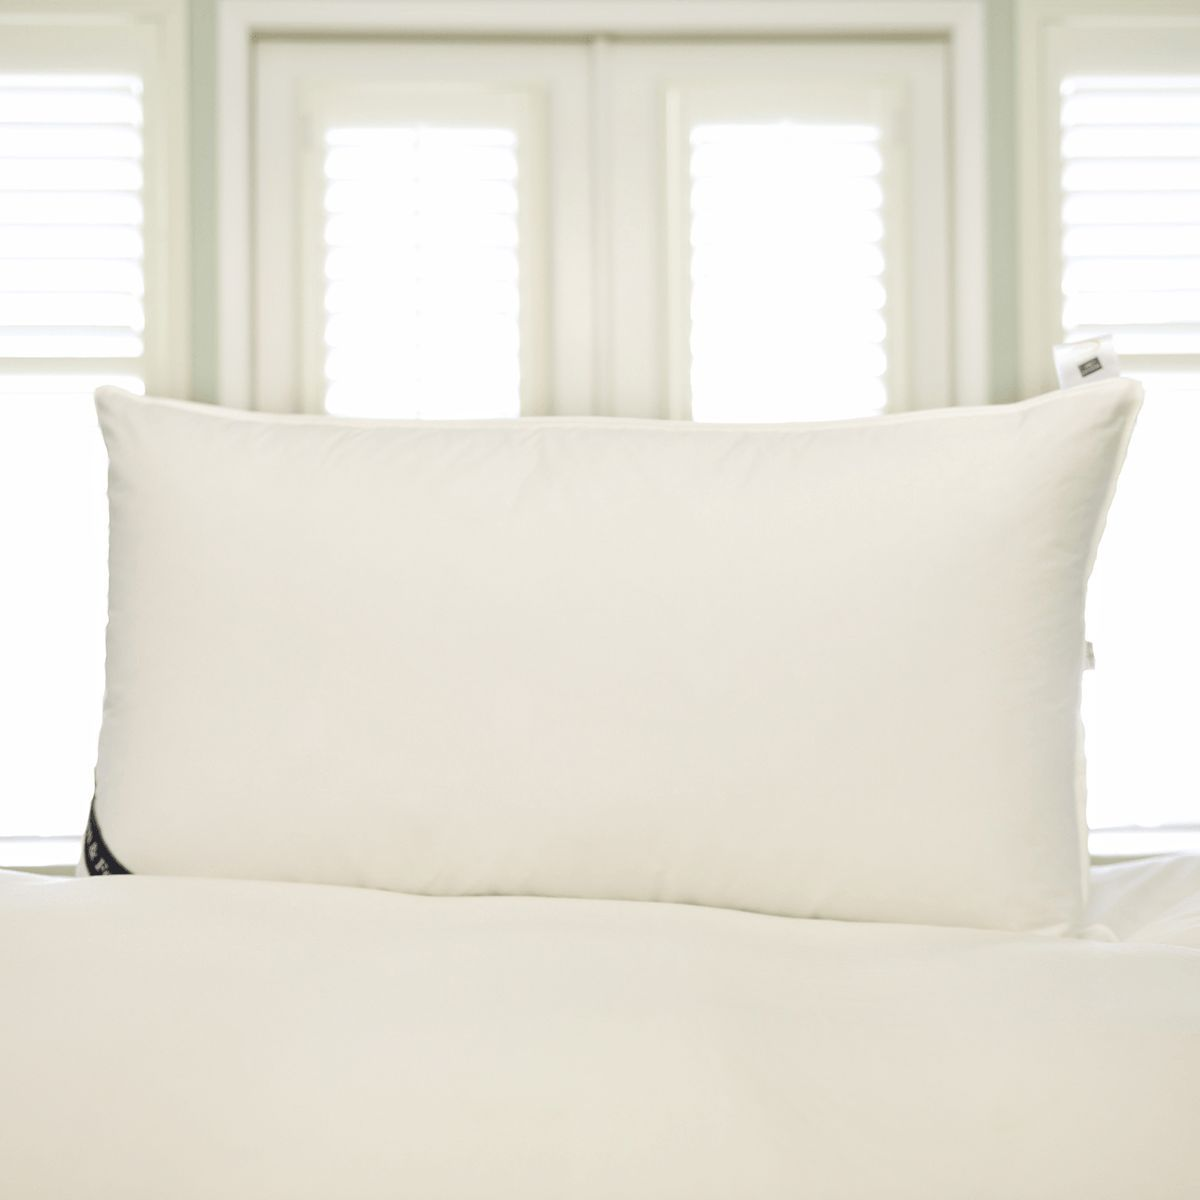 snuggle soft 800 fill power goose down pillows king 20 x 36